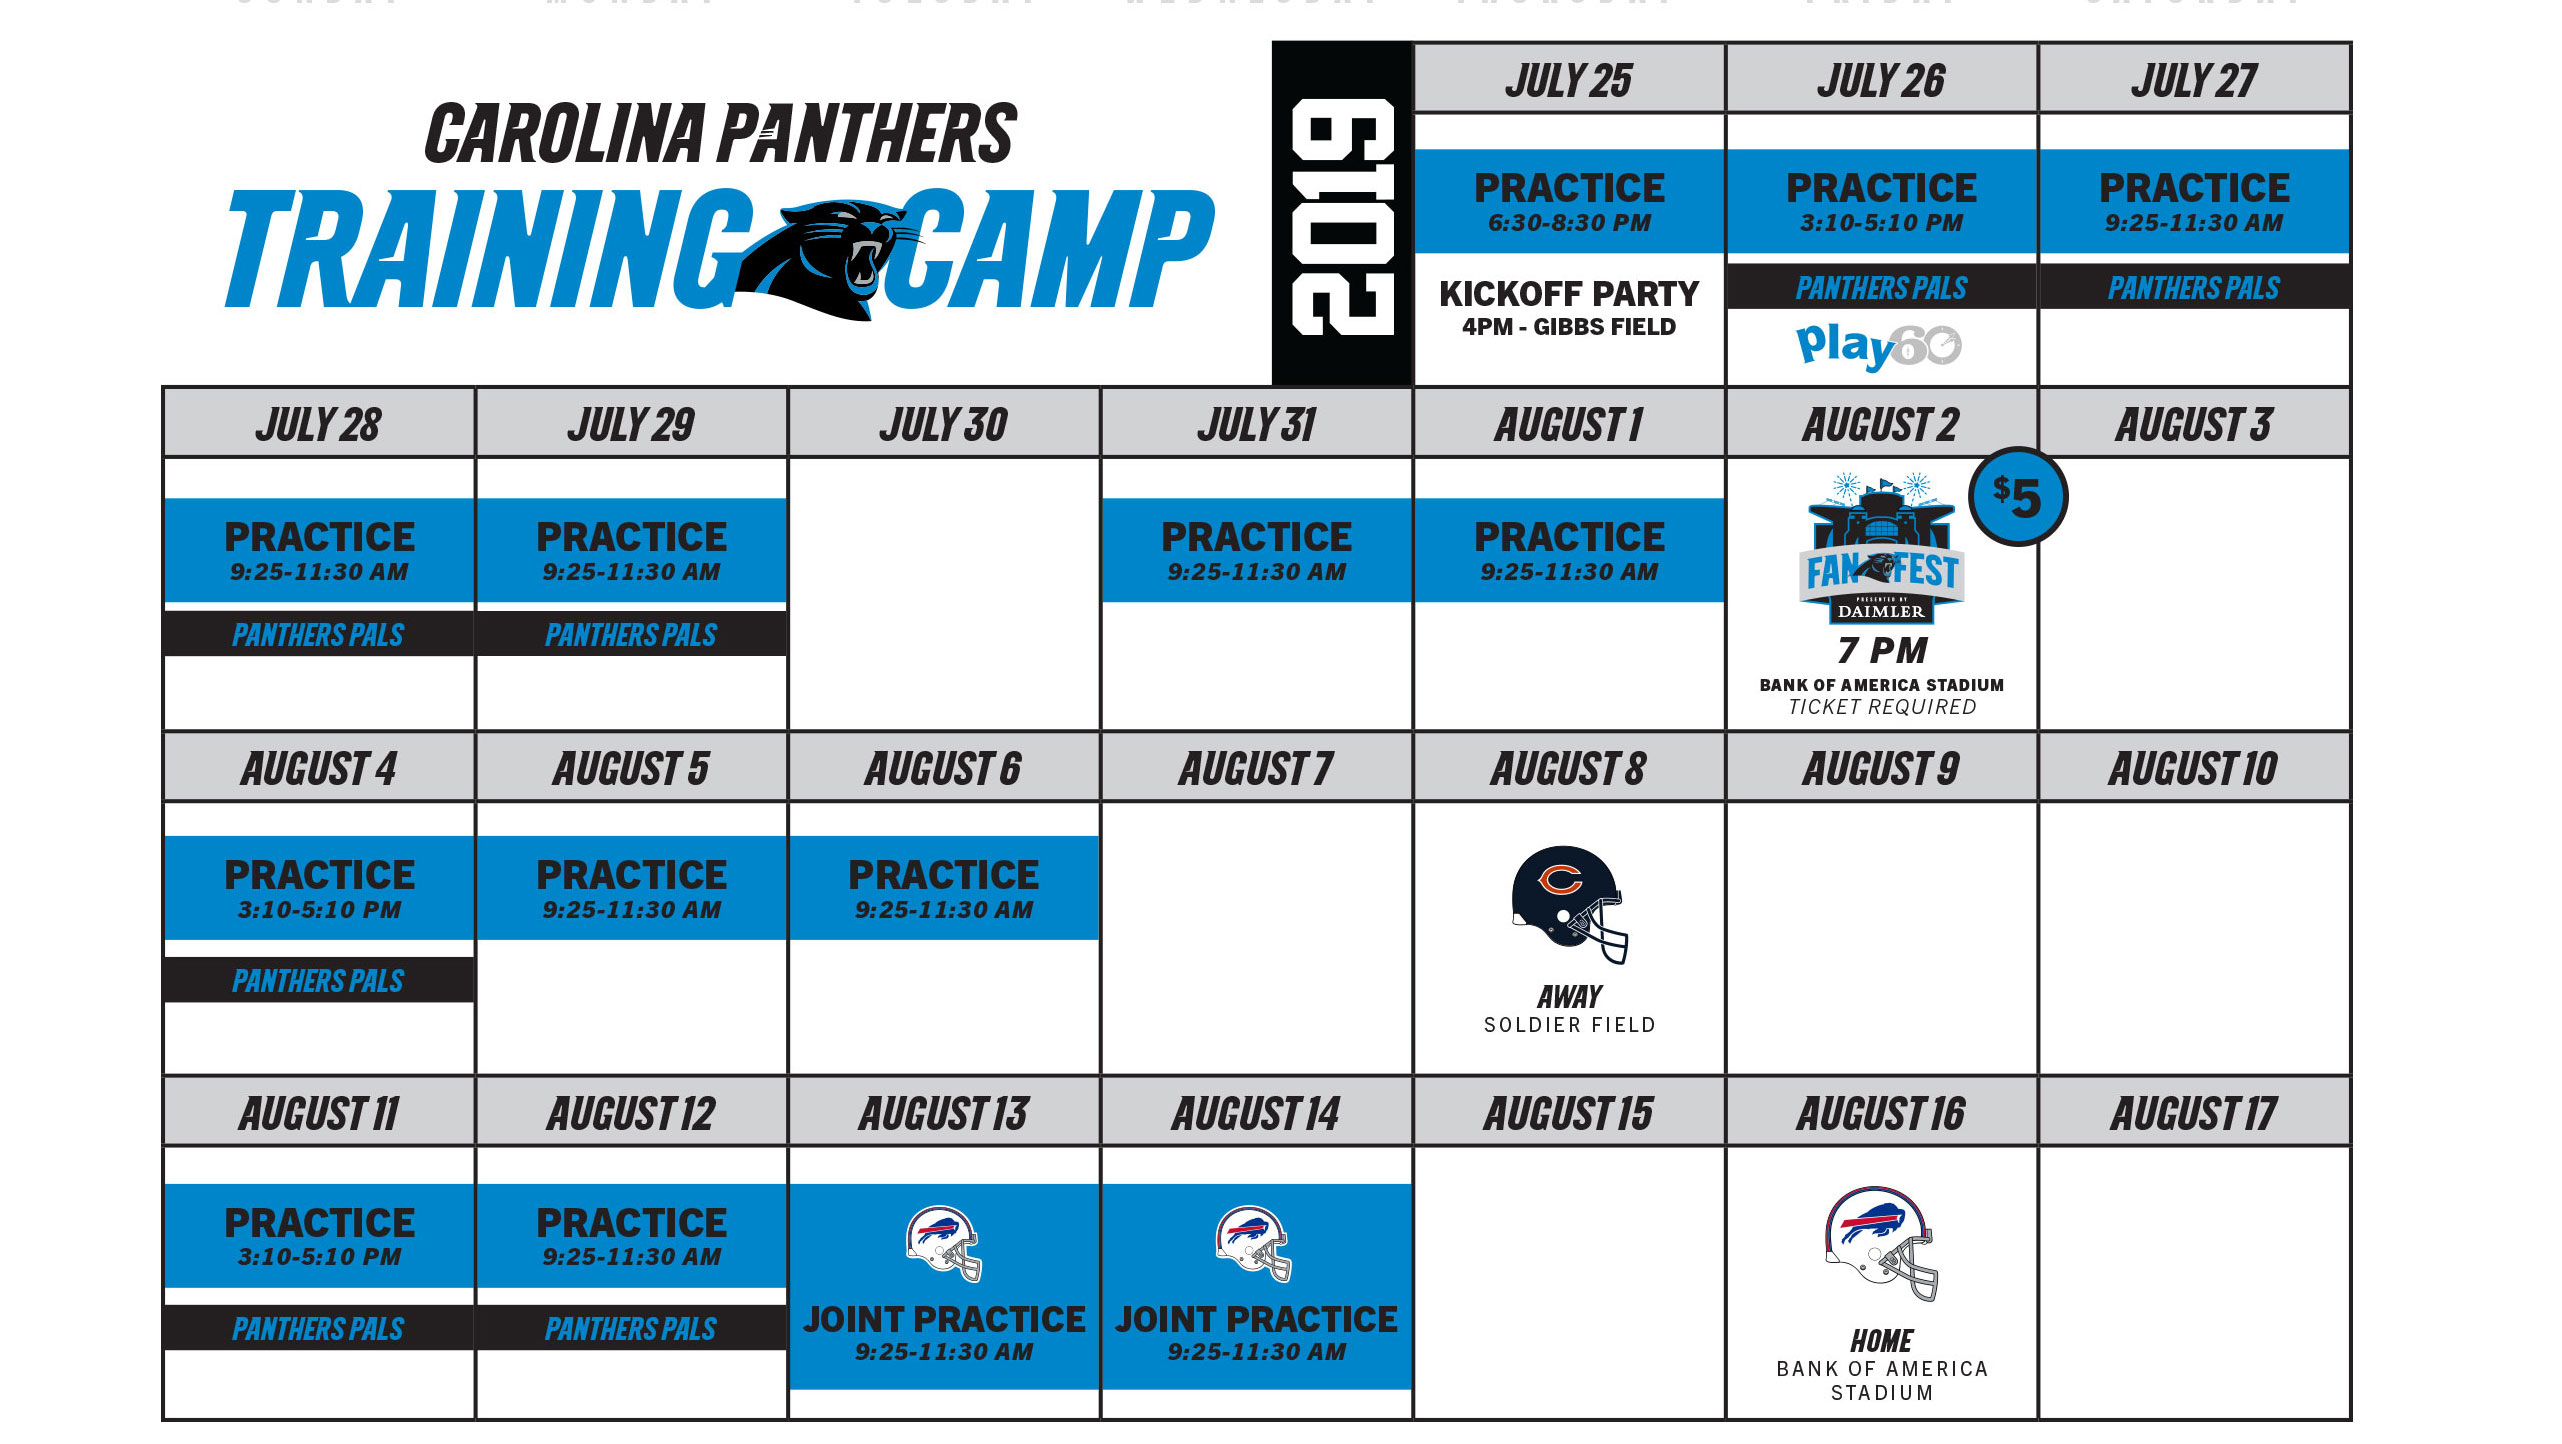 Carolina Panthers Schedule 2020.Carolina Panthers Preseason Schedule 2020 Schedule 2020